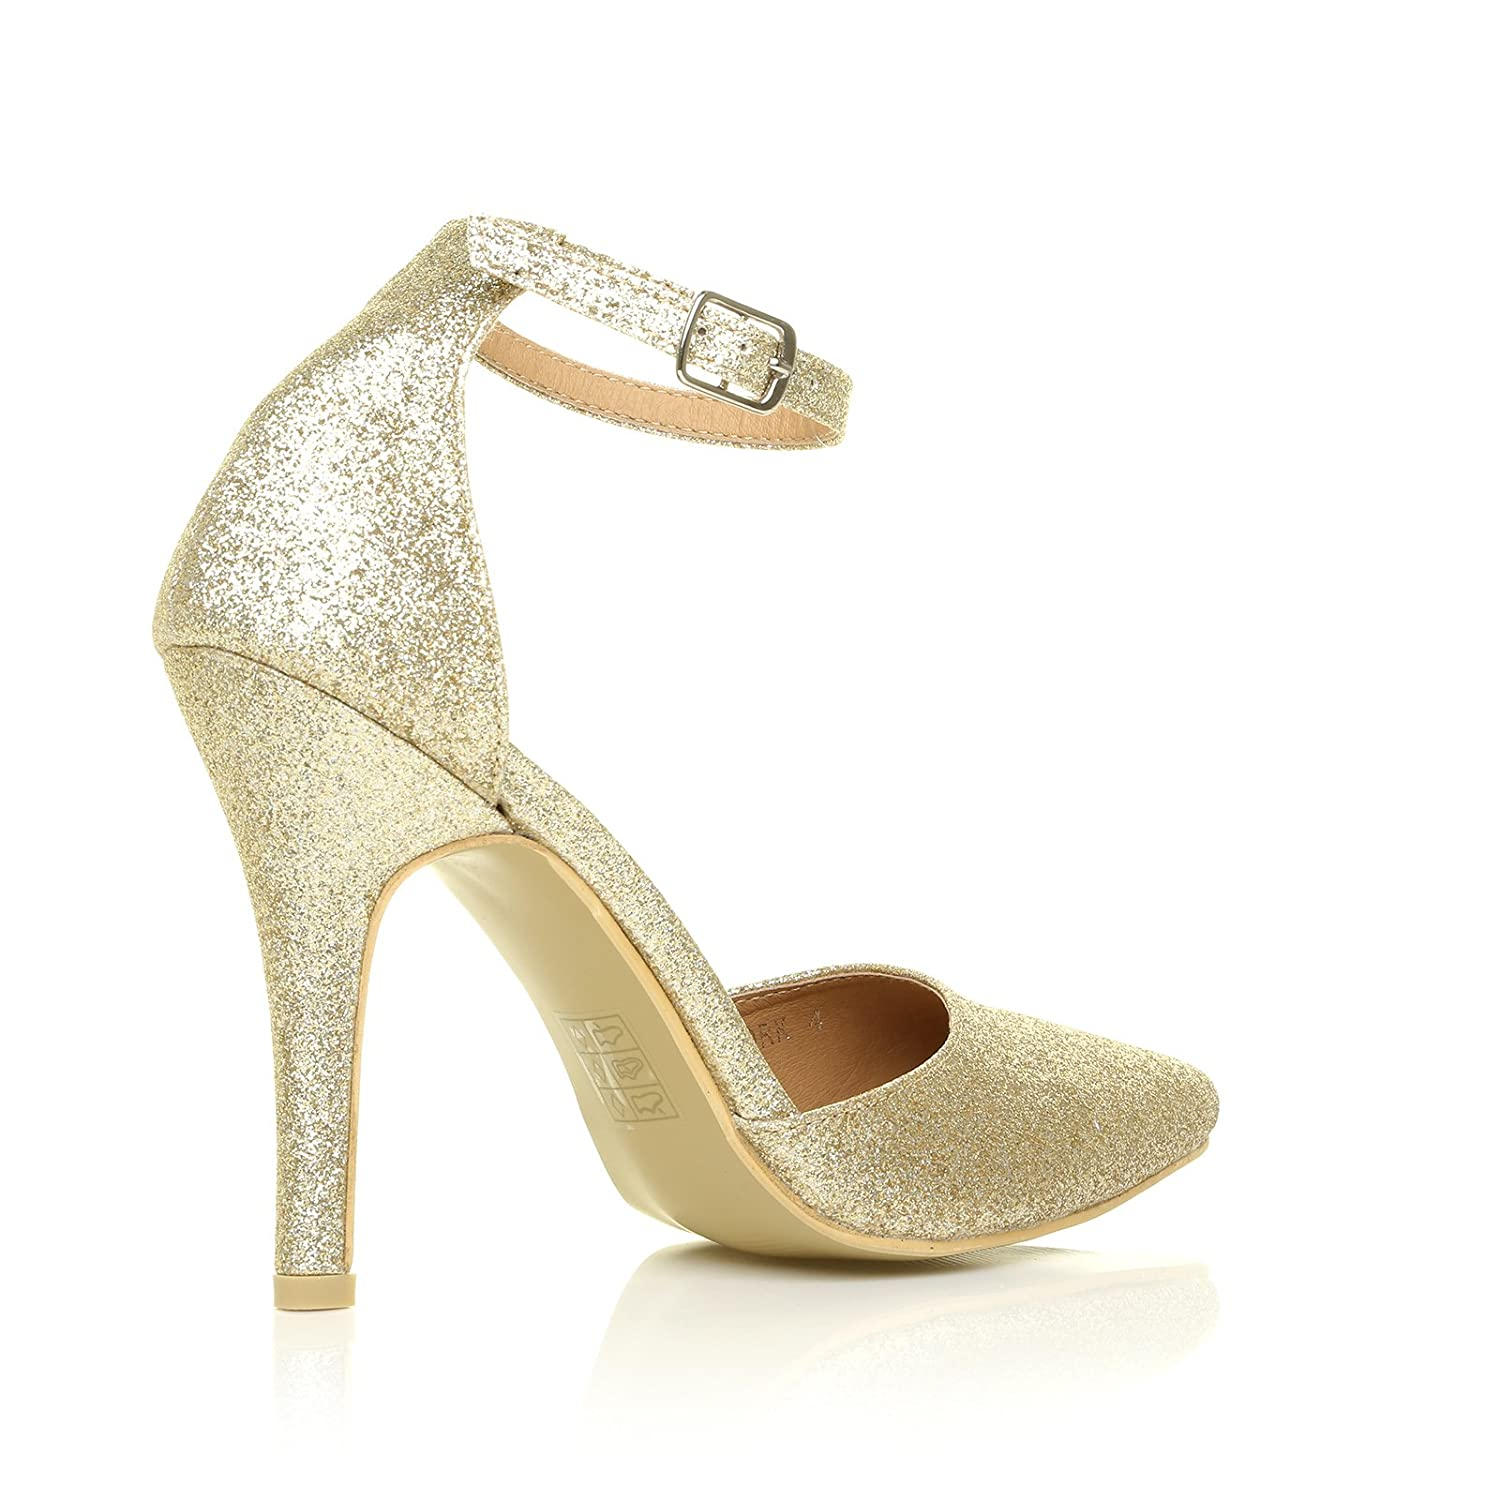 New York Champagne Gold Glitter Ankle Strap Pointed High Heel Court Shoes:  Amazon.co.uk: Shoes & Bags